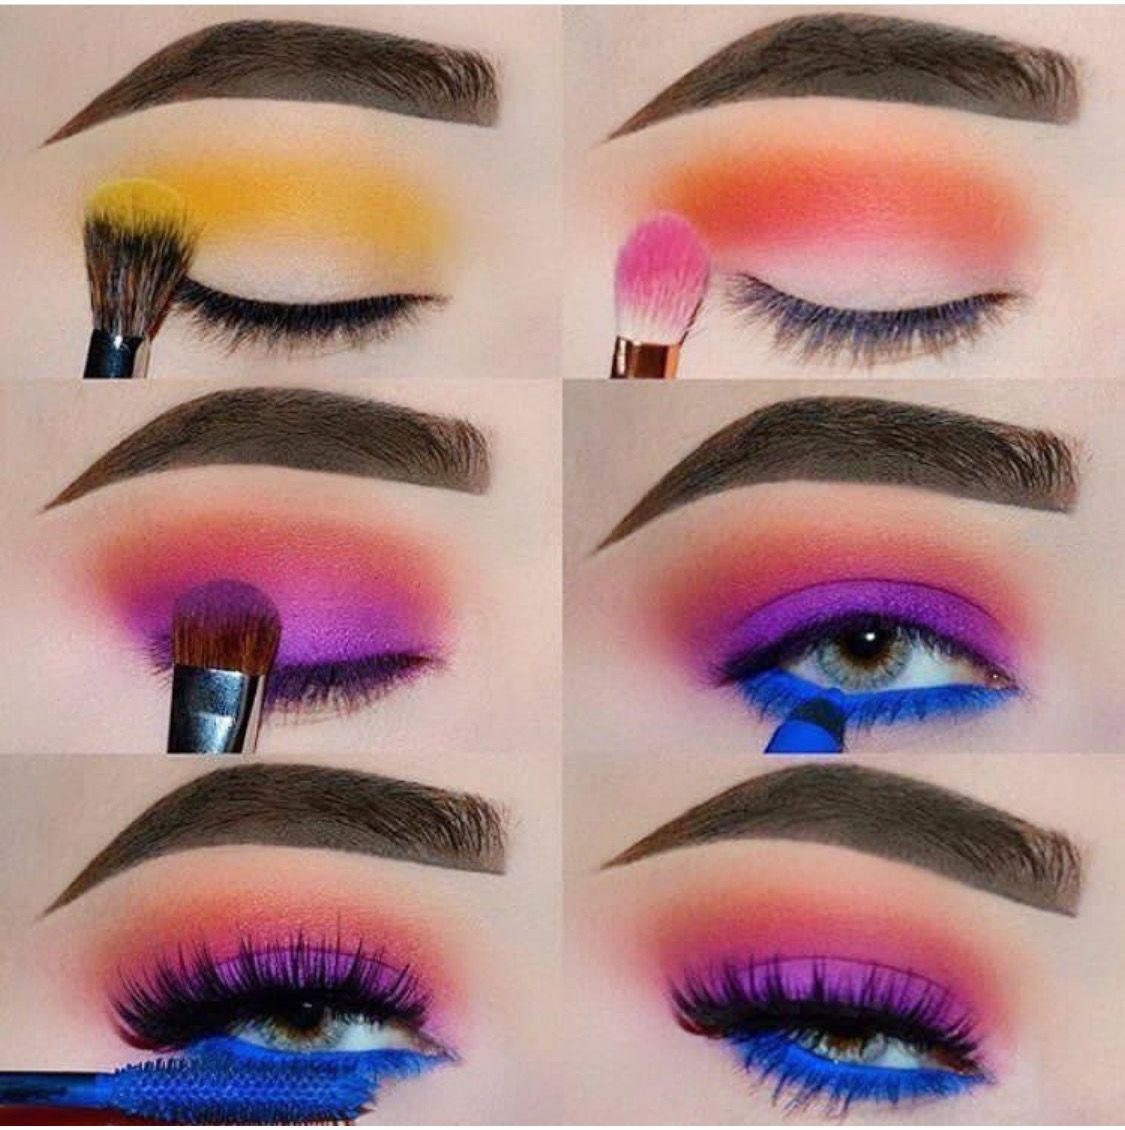 Colorful eye shadow makeup tutorial, super easy to follow